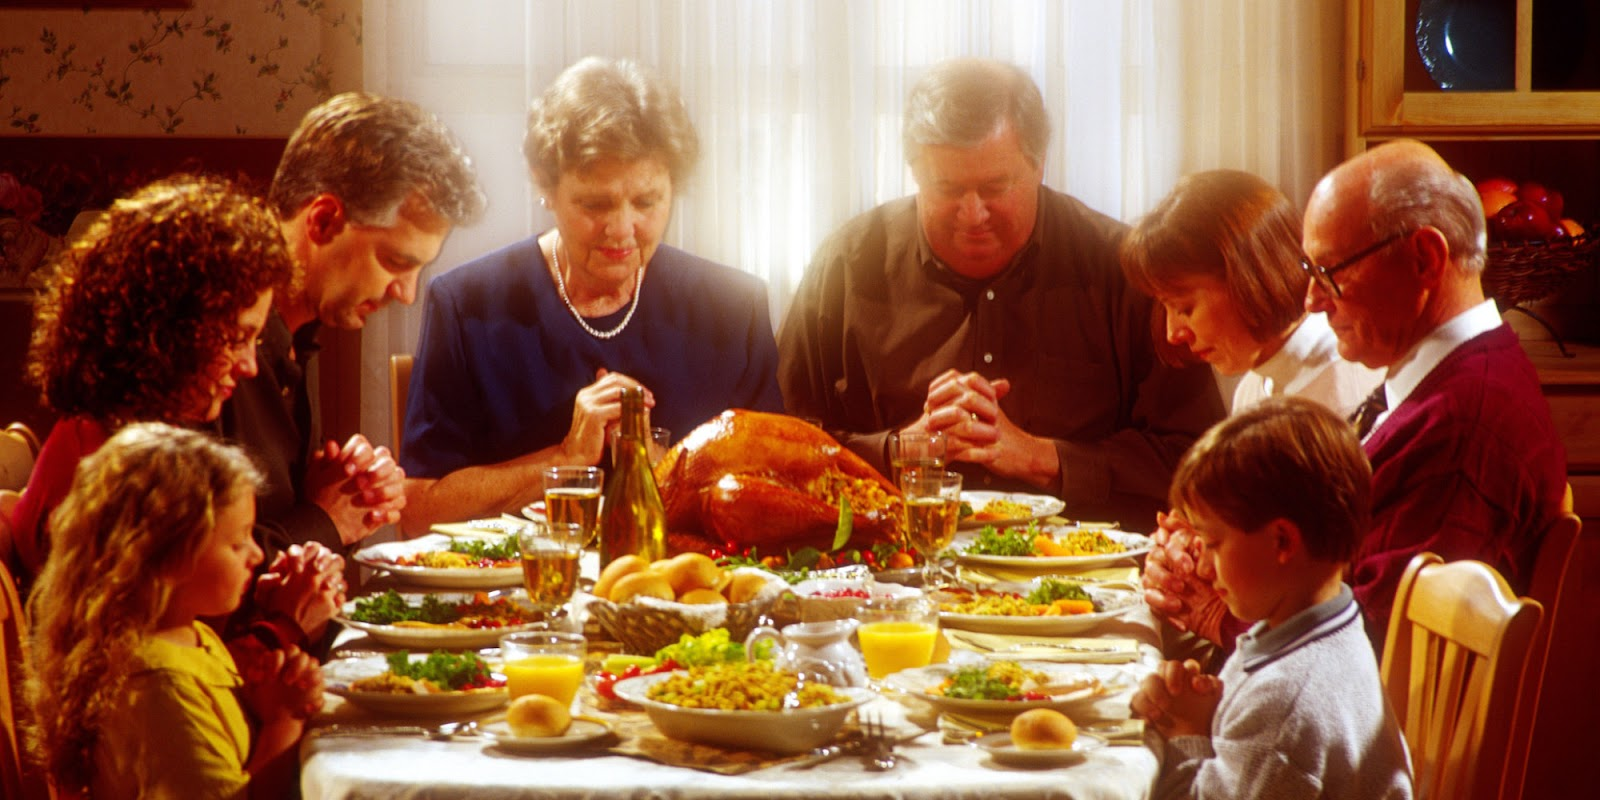 Thanksgiving: Now And Then|The Circle